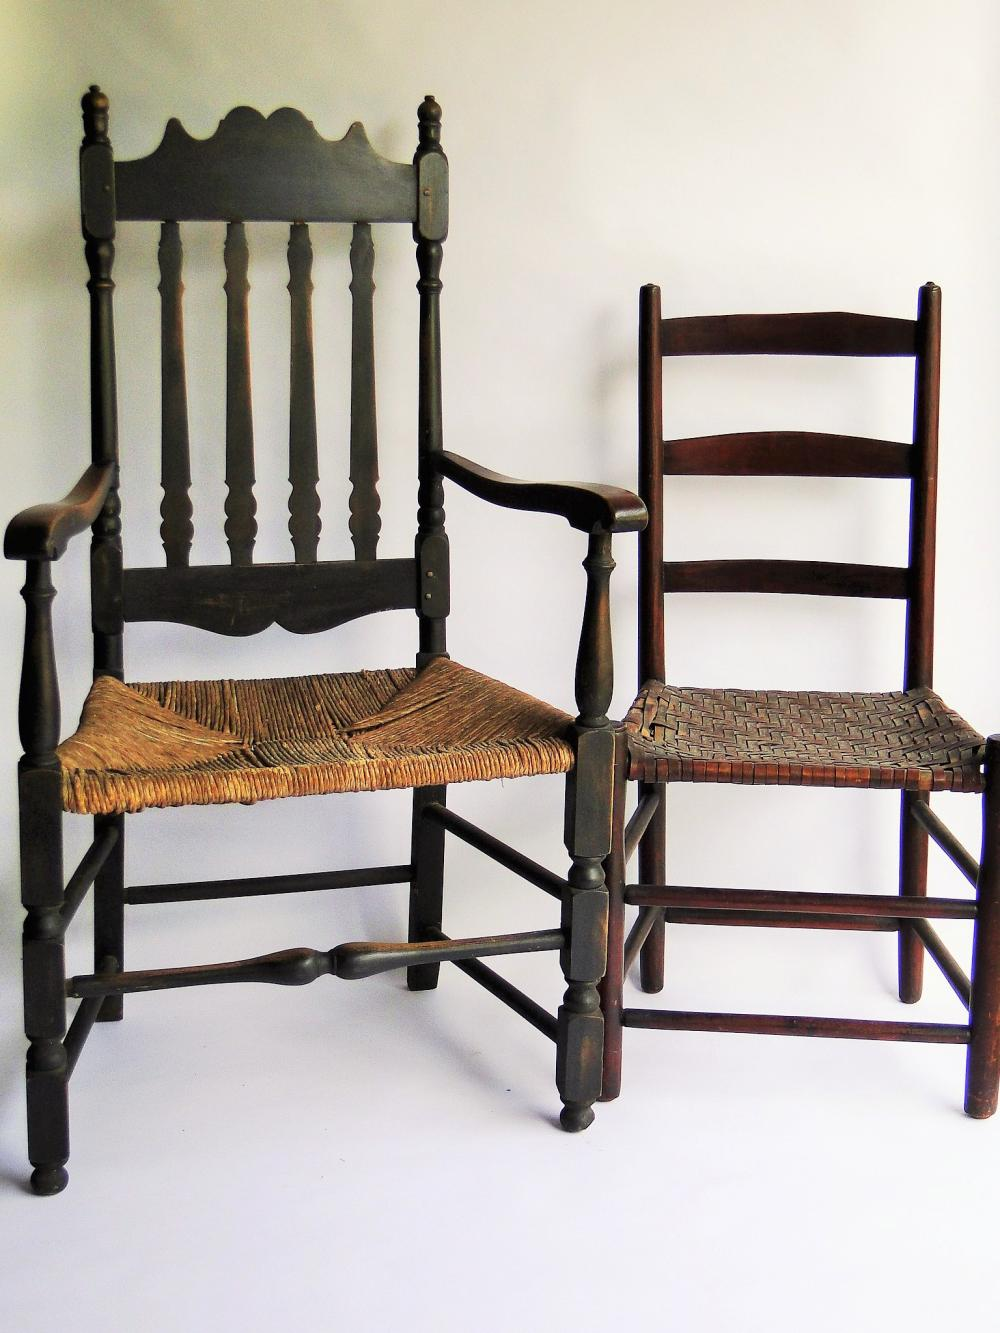 TWO CHAIRS BANNISTER BACK ARM CHAIR,LADDERBACK